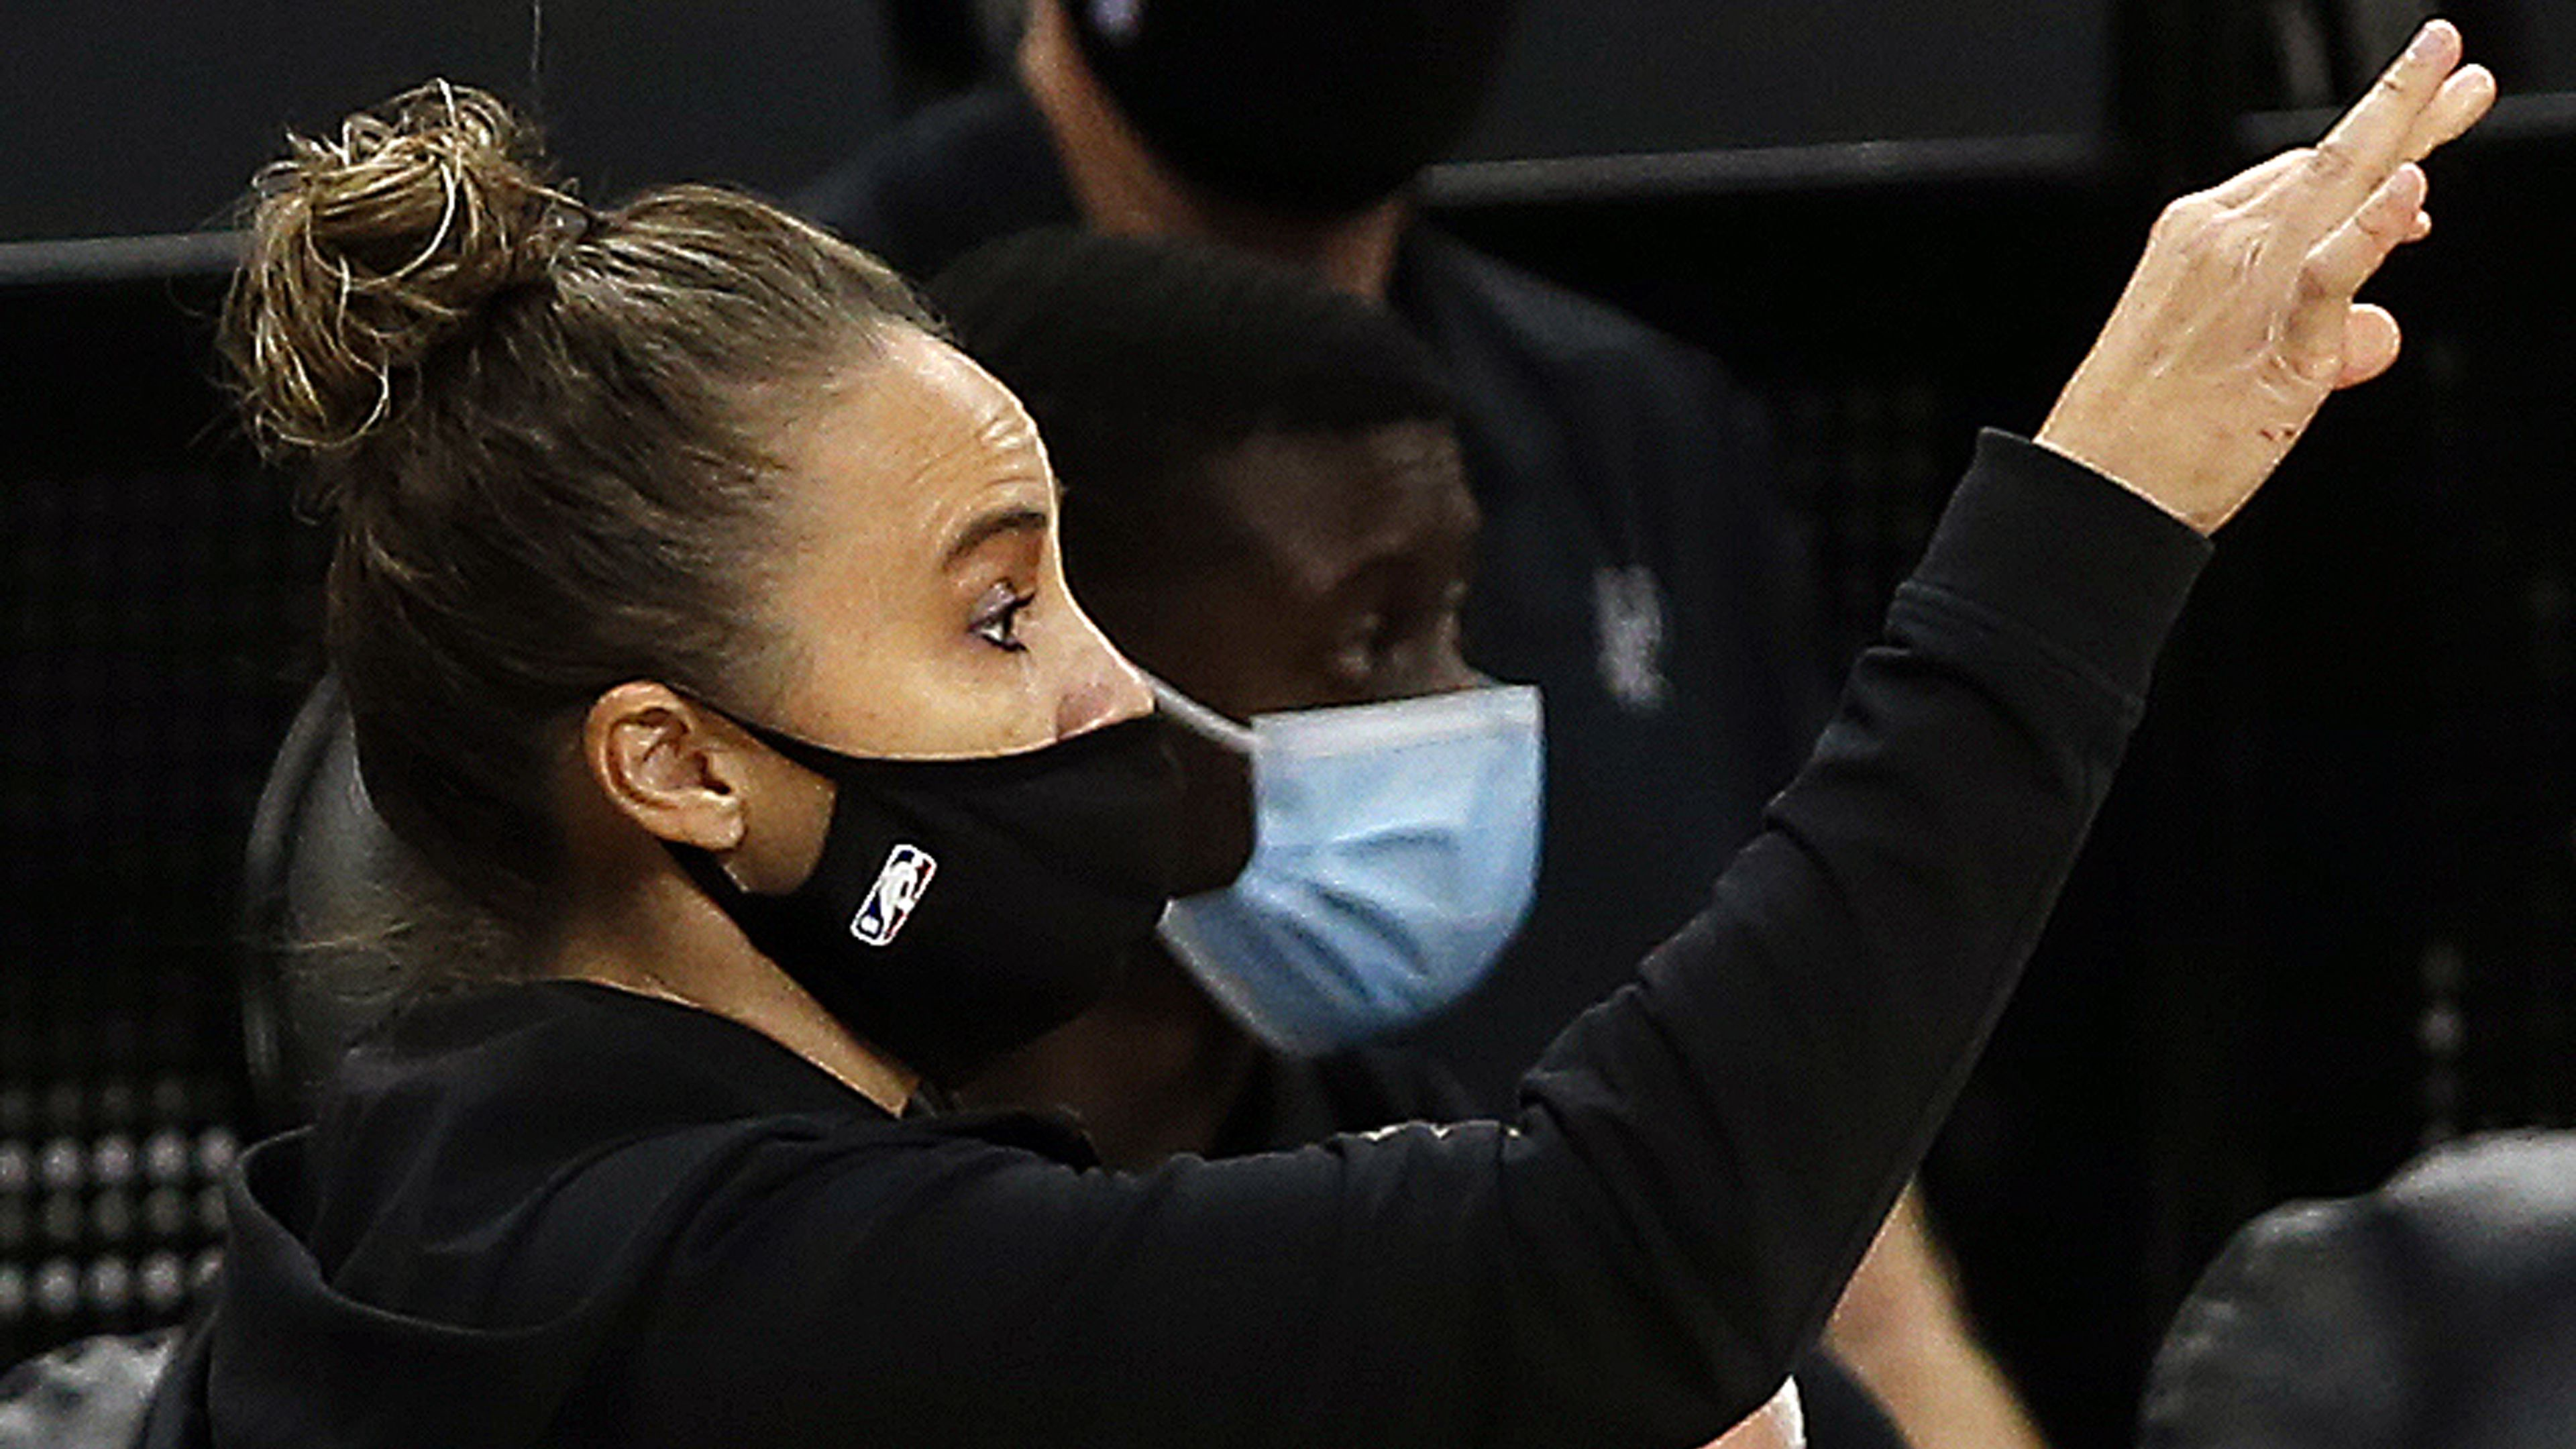 San Antonio Spurs assistant Becky Hammon makes history as the first female to coach an NBA team